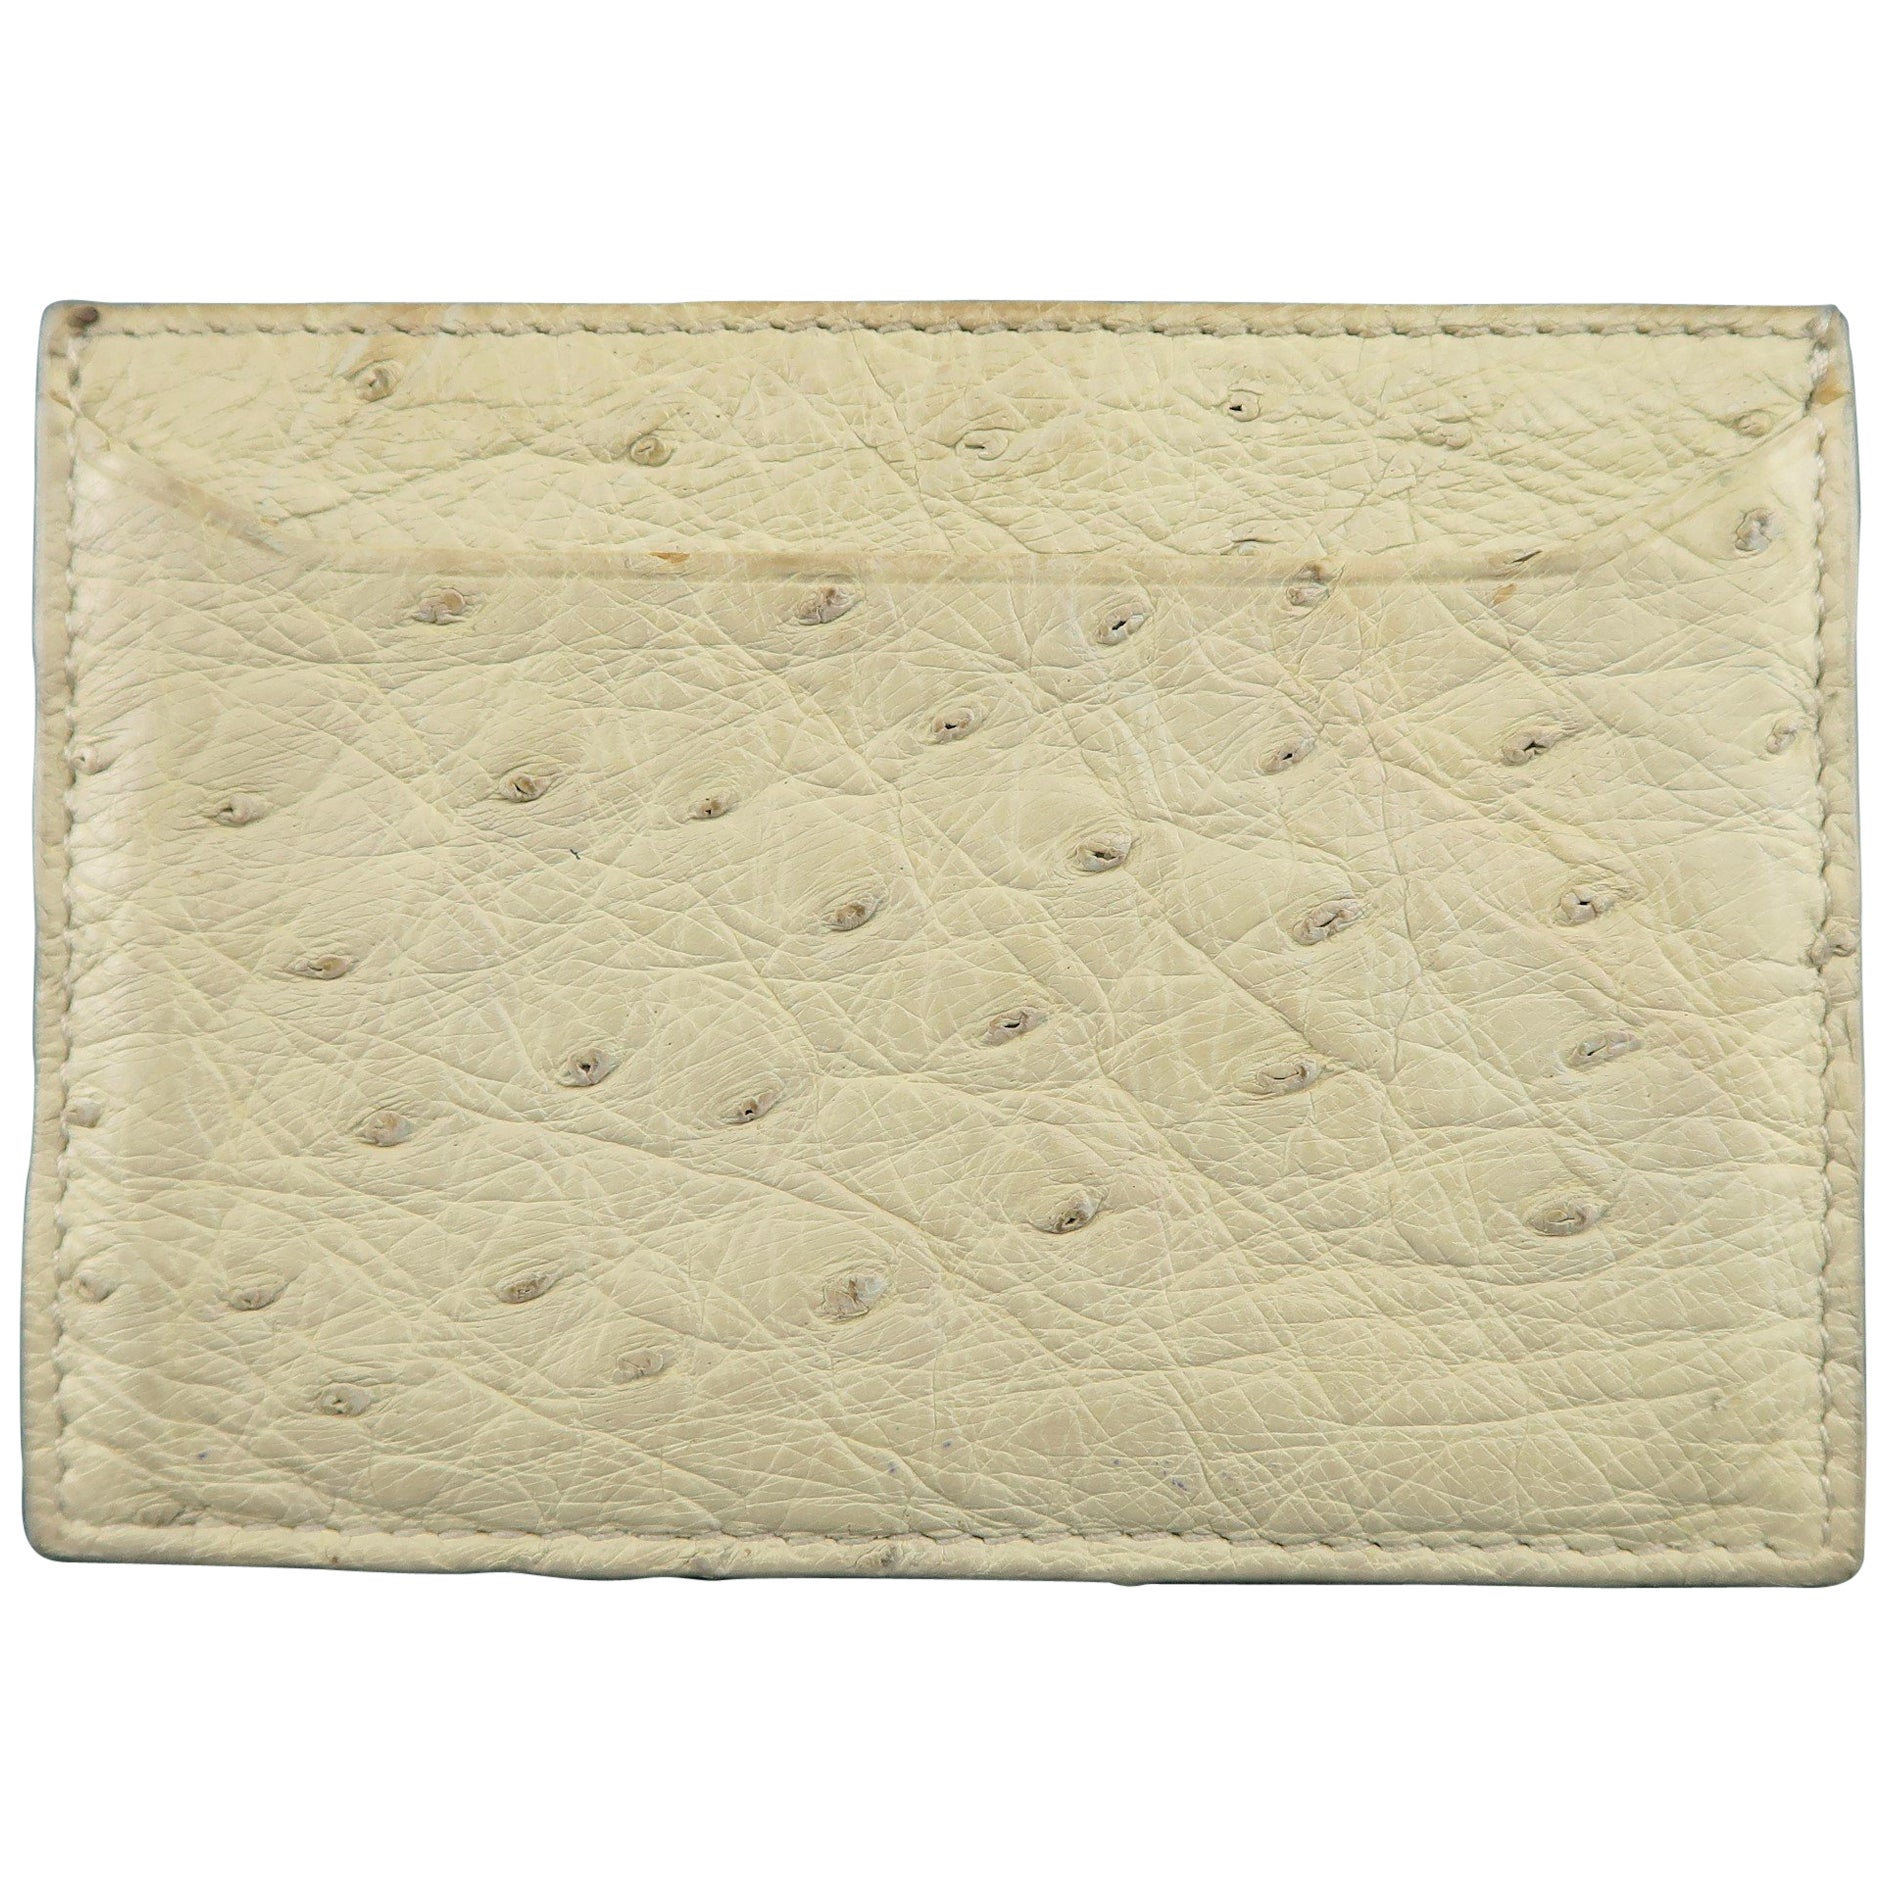 3ea8f3cf5ffd PRADA Light Beige Ostrich Leather Card Case at 1stdibs